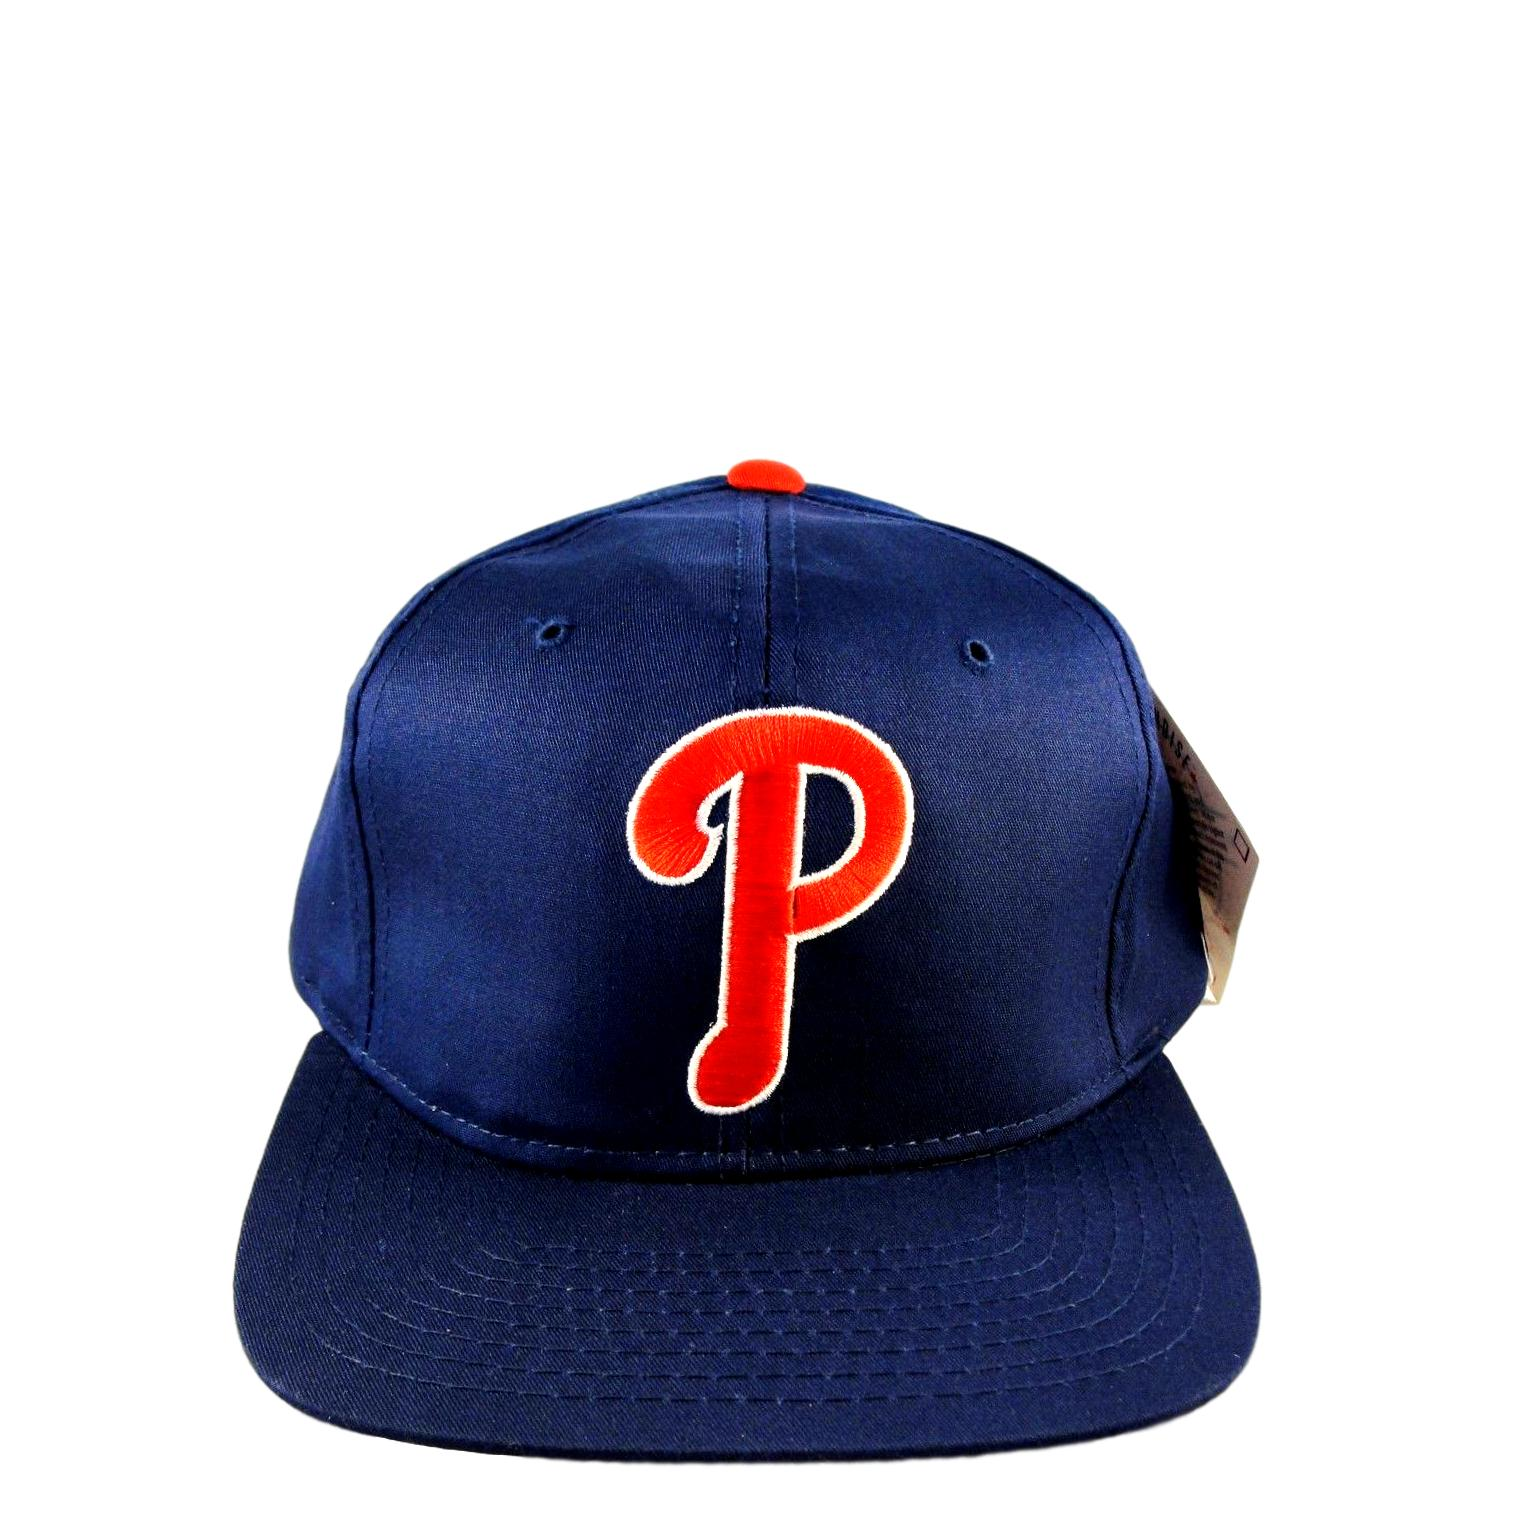 Phillies New Era 90's Snapback